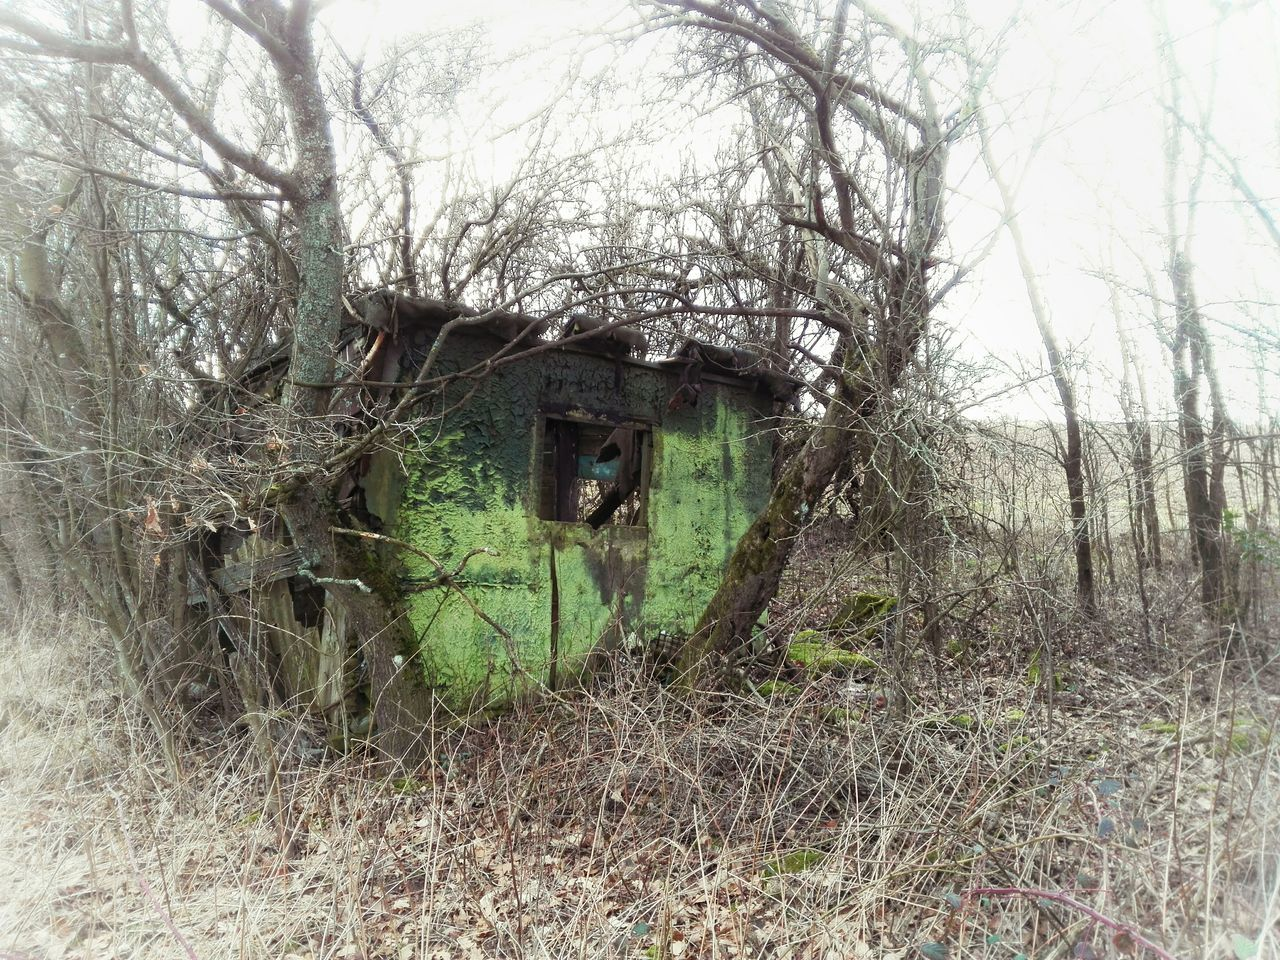 Tree No People Green Color Day Nature Close-up Outdoors Decay Abandoned Deserted Barrack Moss Forest Wabisabi